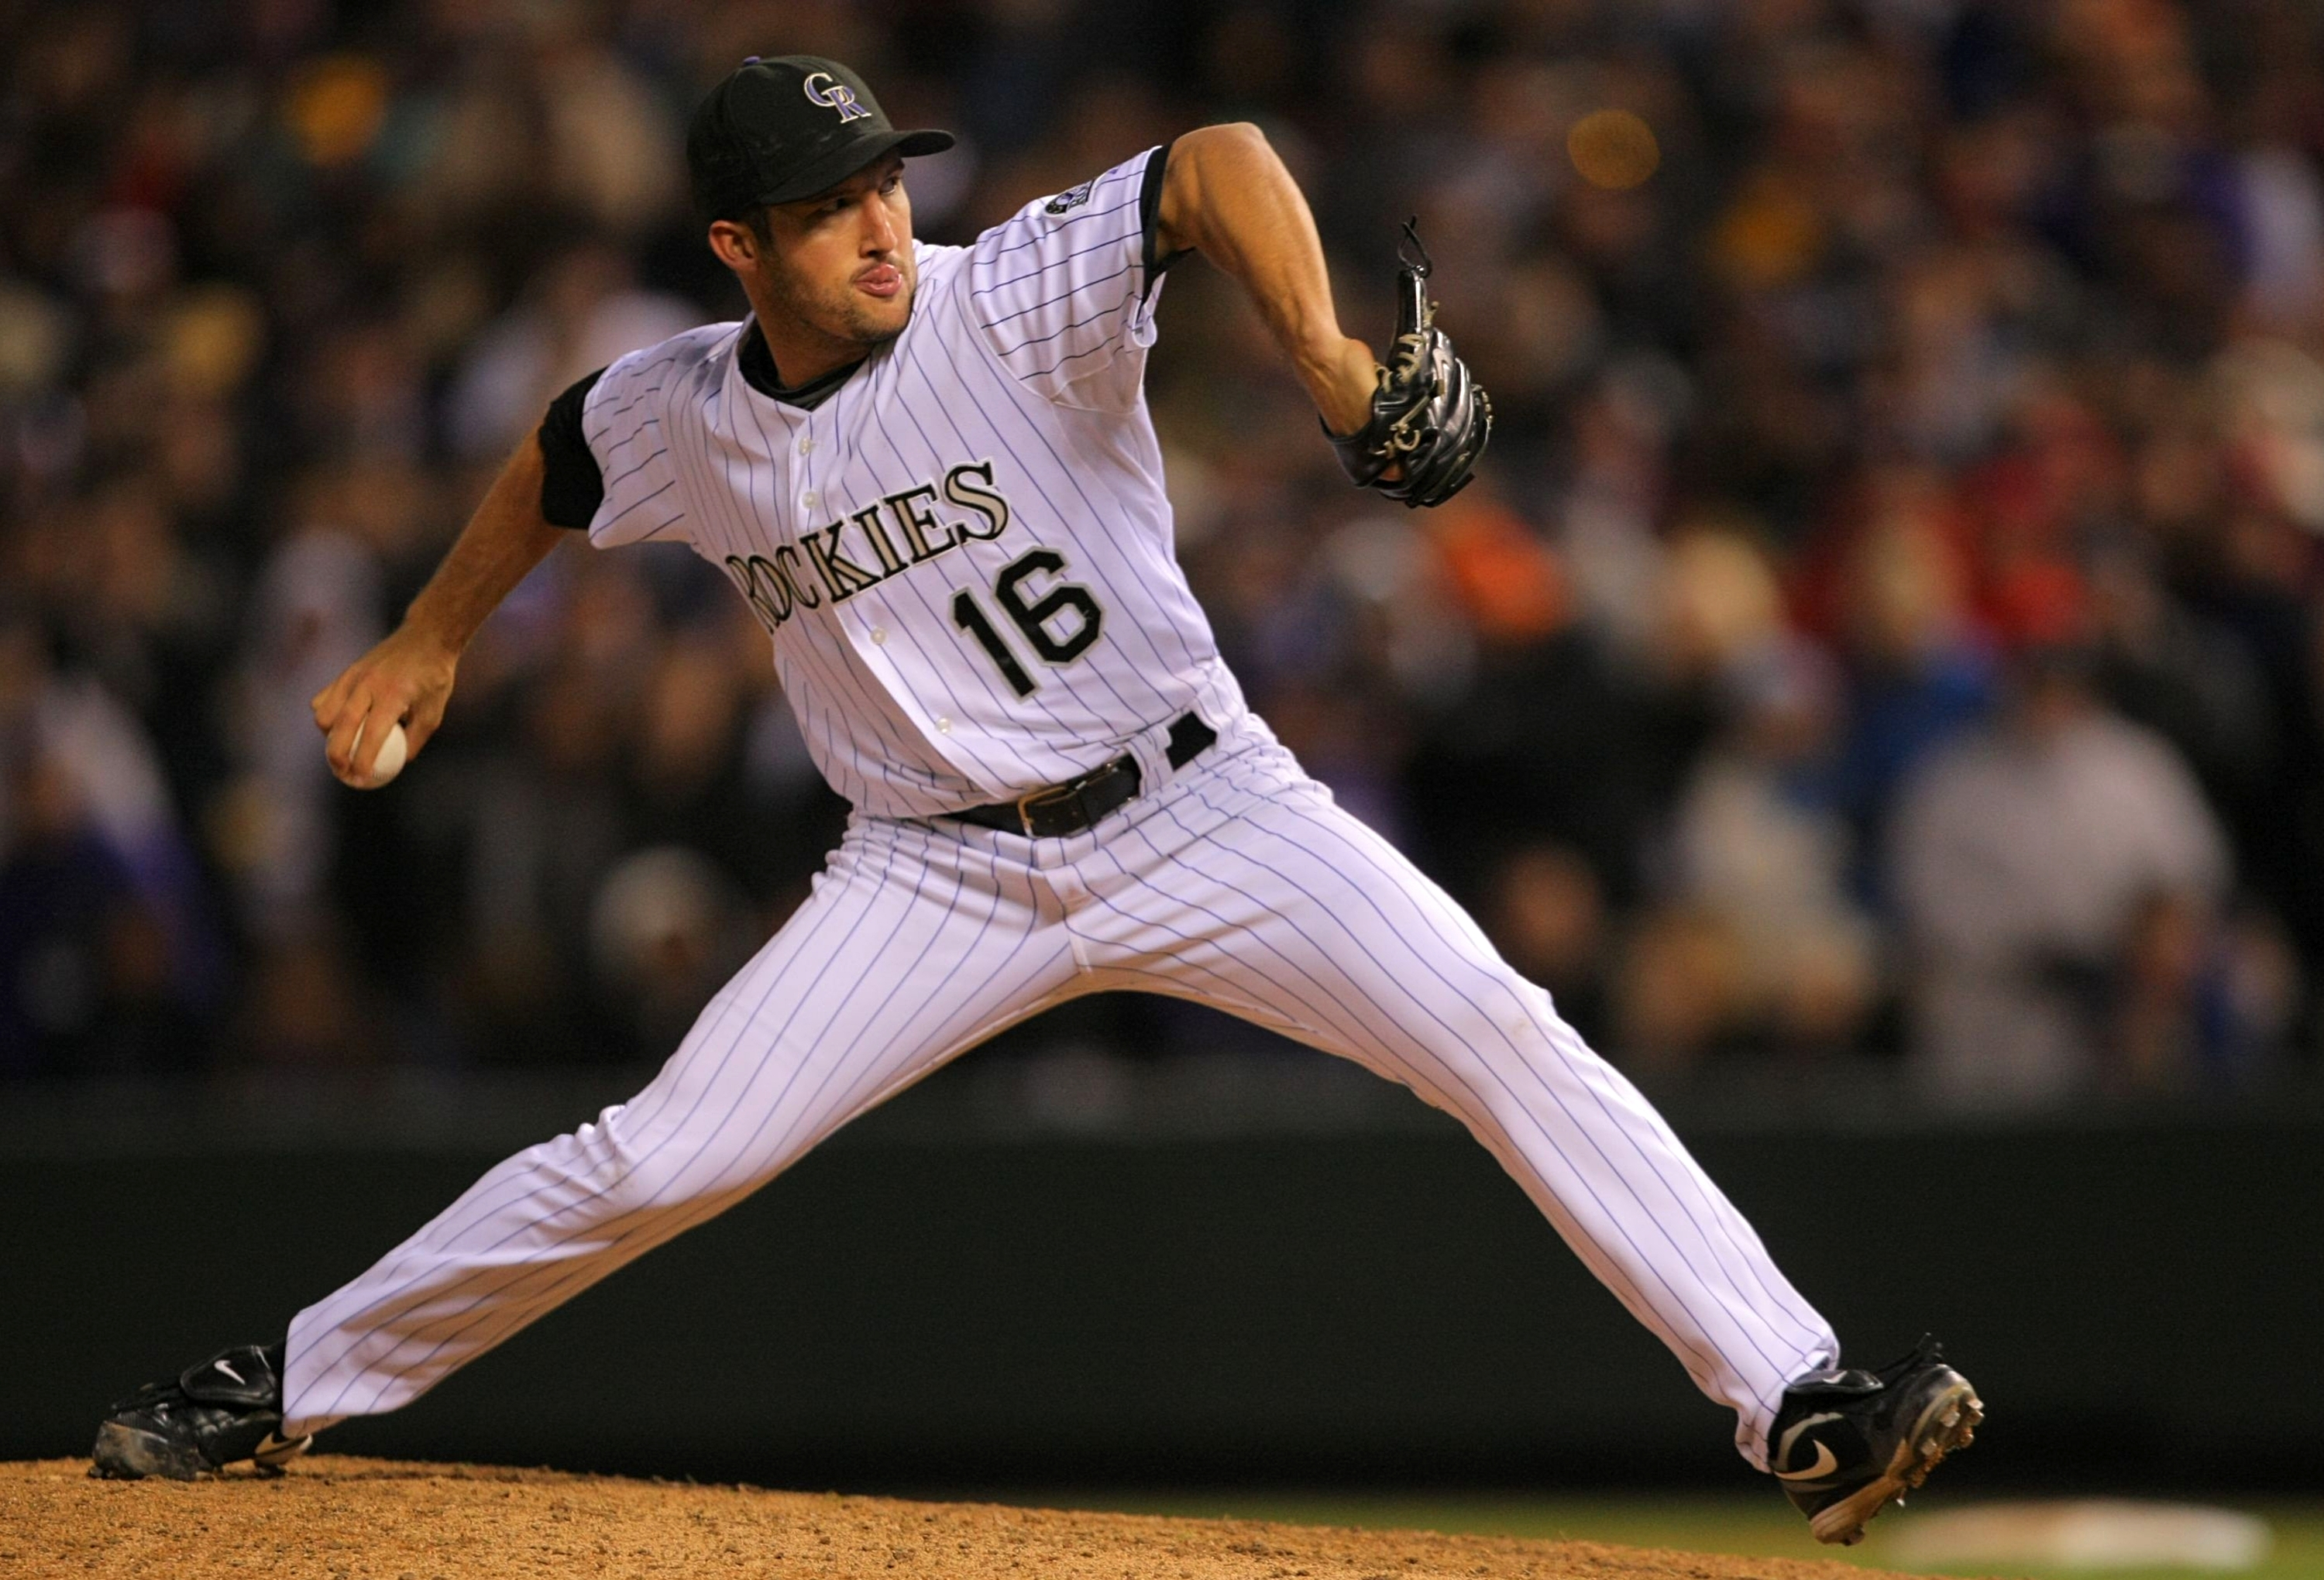 DENVER - OCTOBER 11:  Huston Street #16 of the Colorado Rockies pitches against the Philadelphia Phillies in the ninth inning in Game Four of the NLDS during the 2009 MLB Playoffs at Coors Field on October 12, 2009 in Denver, Colorado.  (Photo by Doug Pen